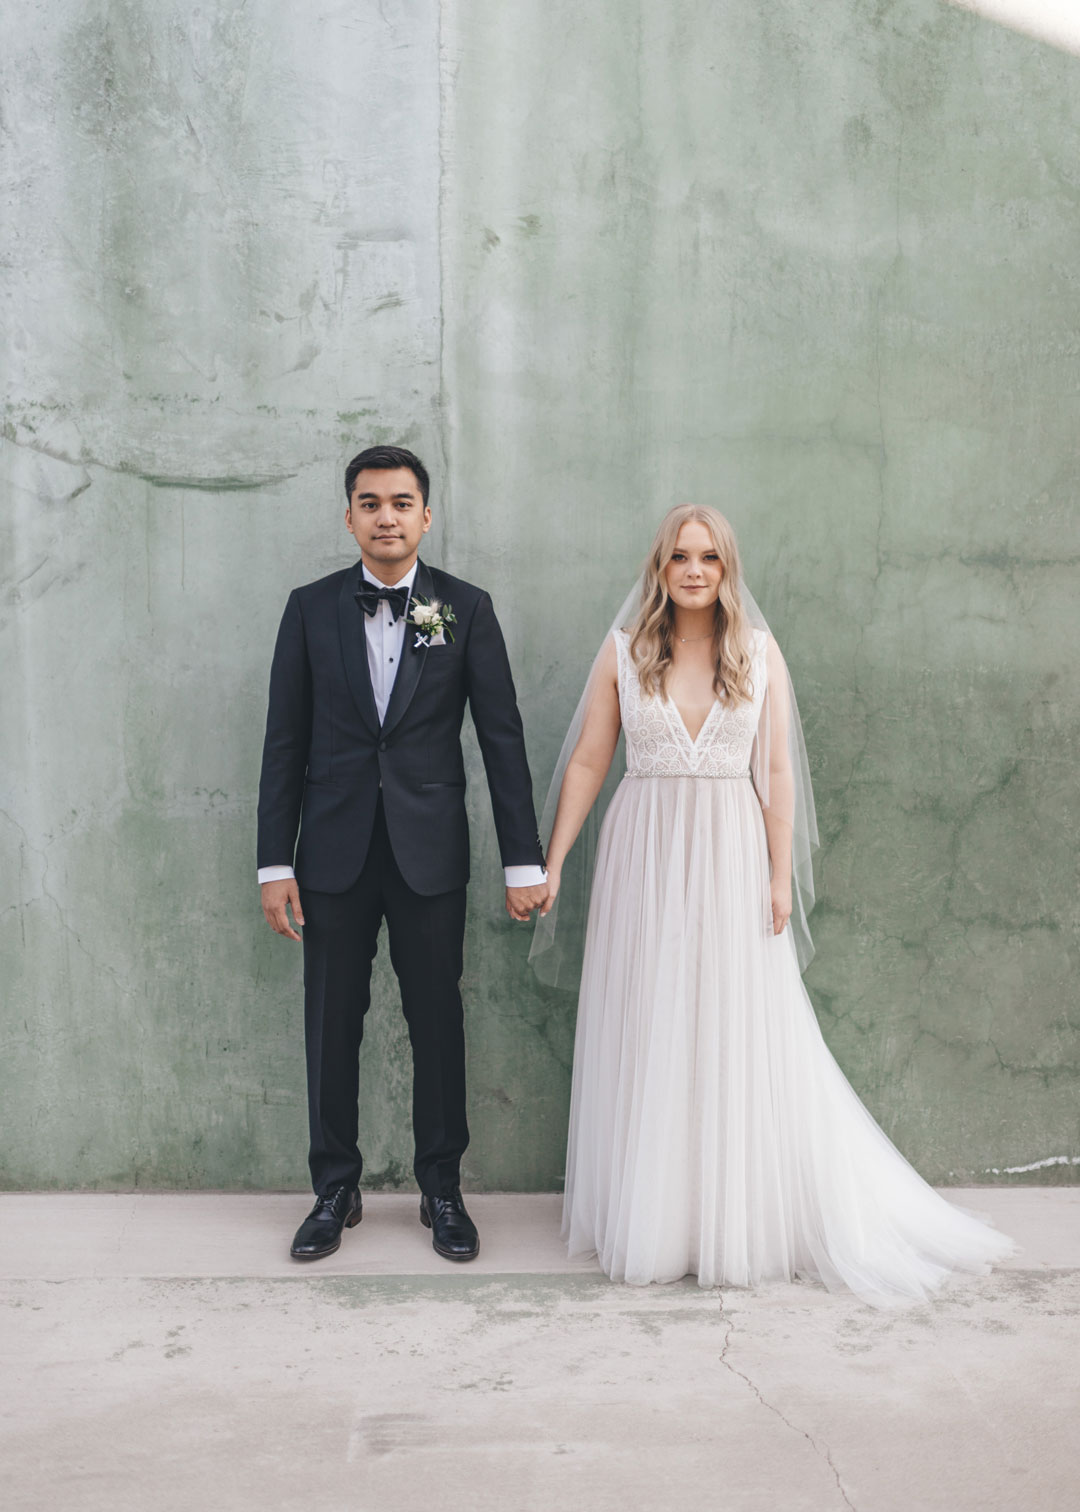 groom in black tux standing next to his bride in white tulle wedding dress